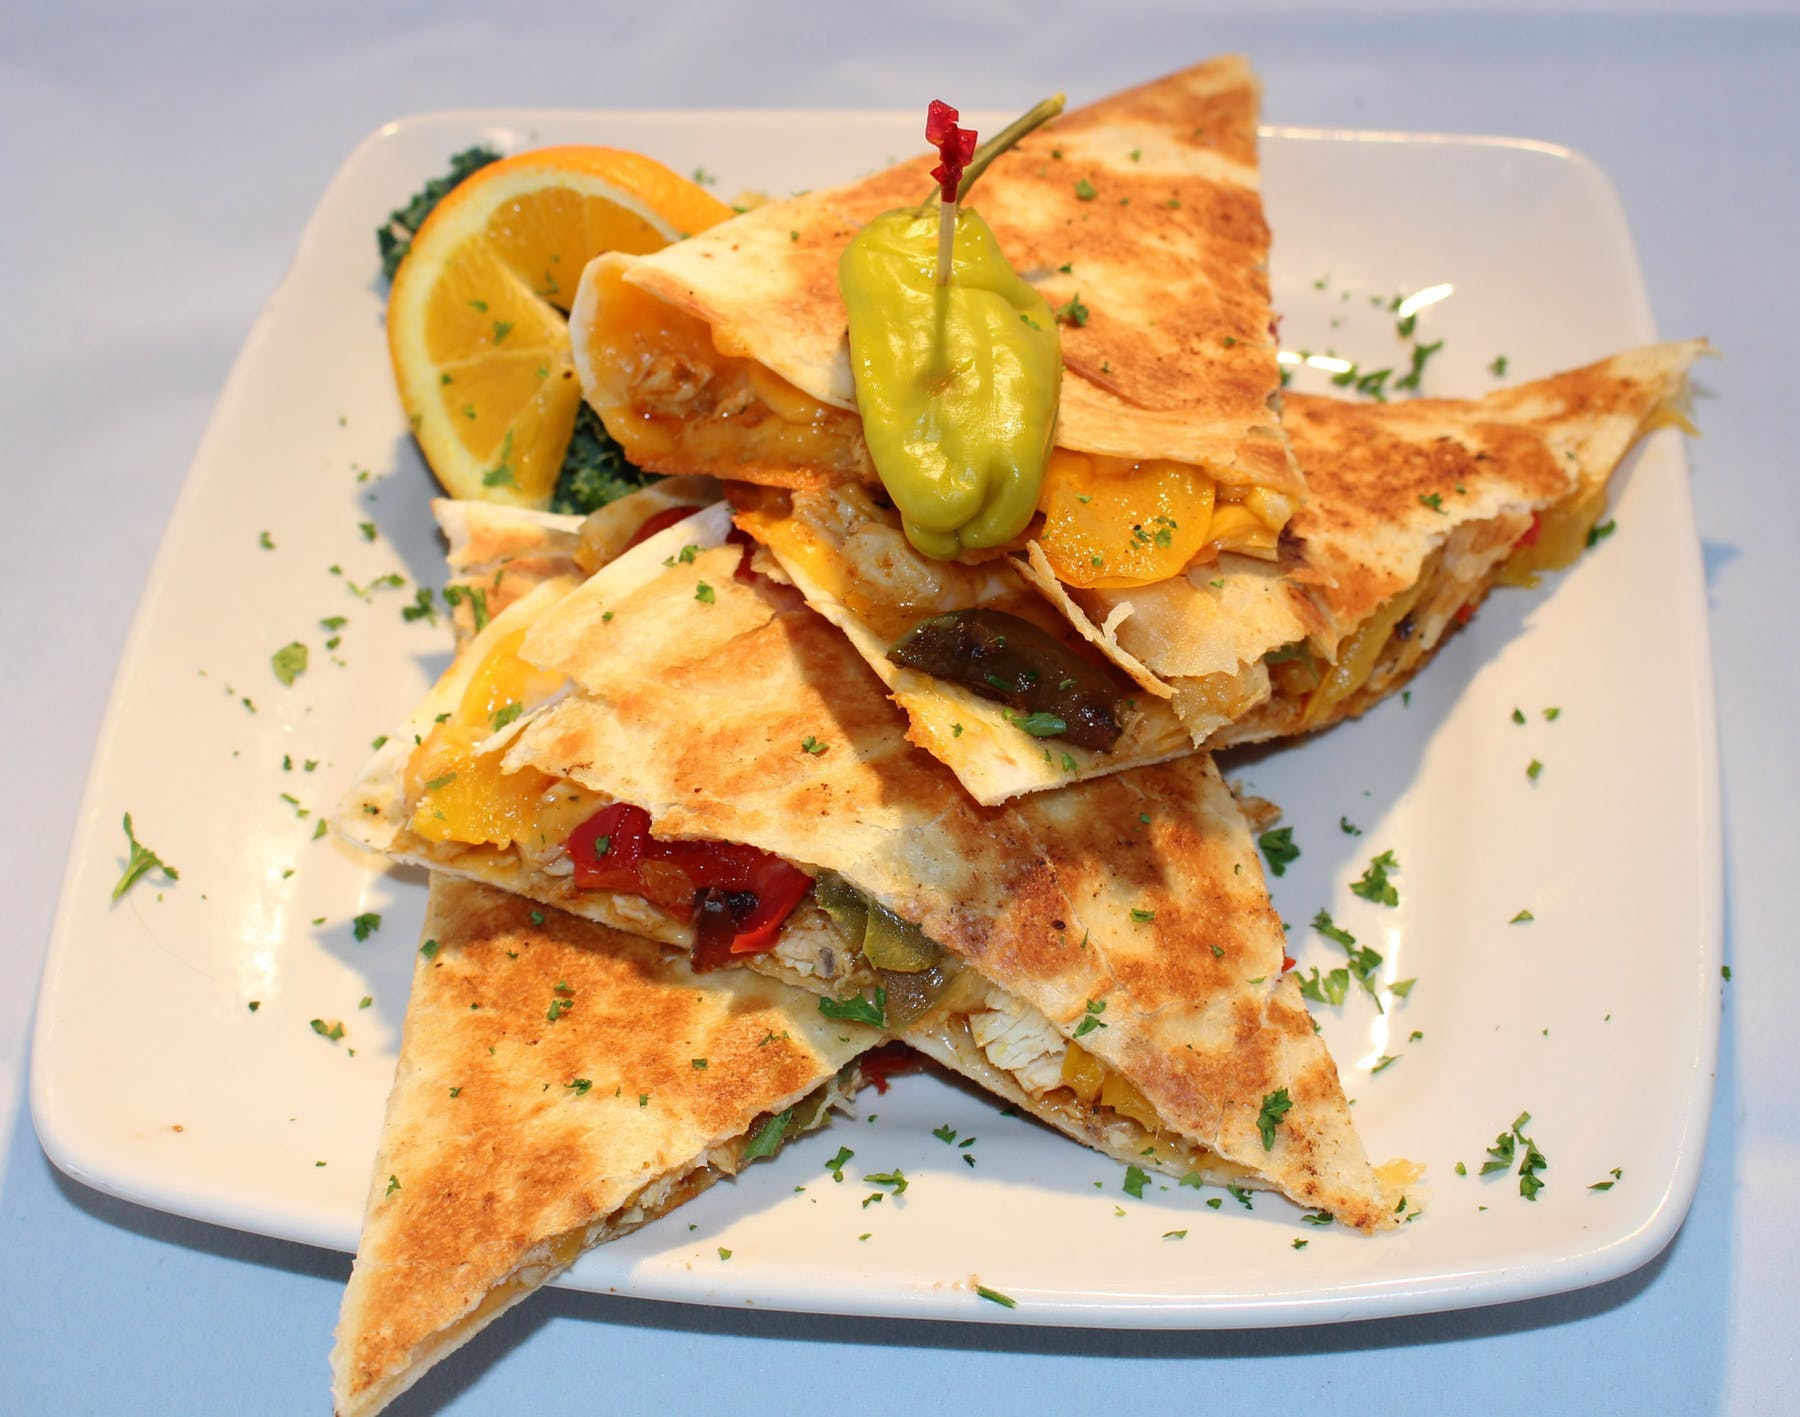 a plate of quesadillas